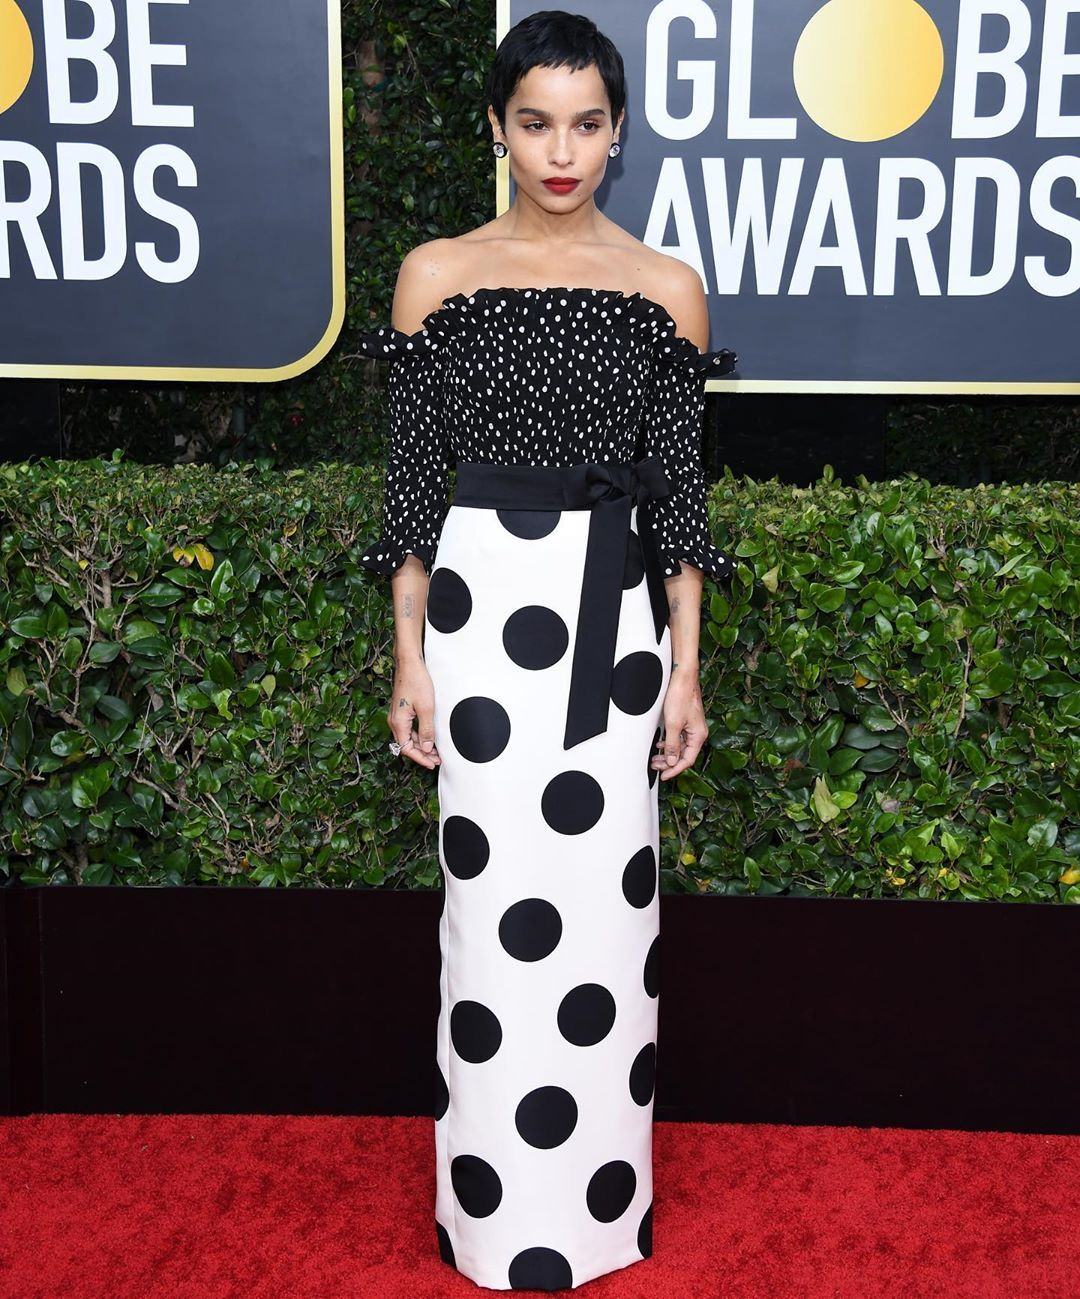 zoe-kravitz-ysl-golden-globes-2020-red-carpet